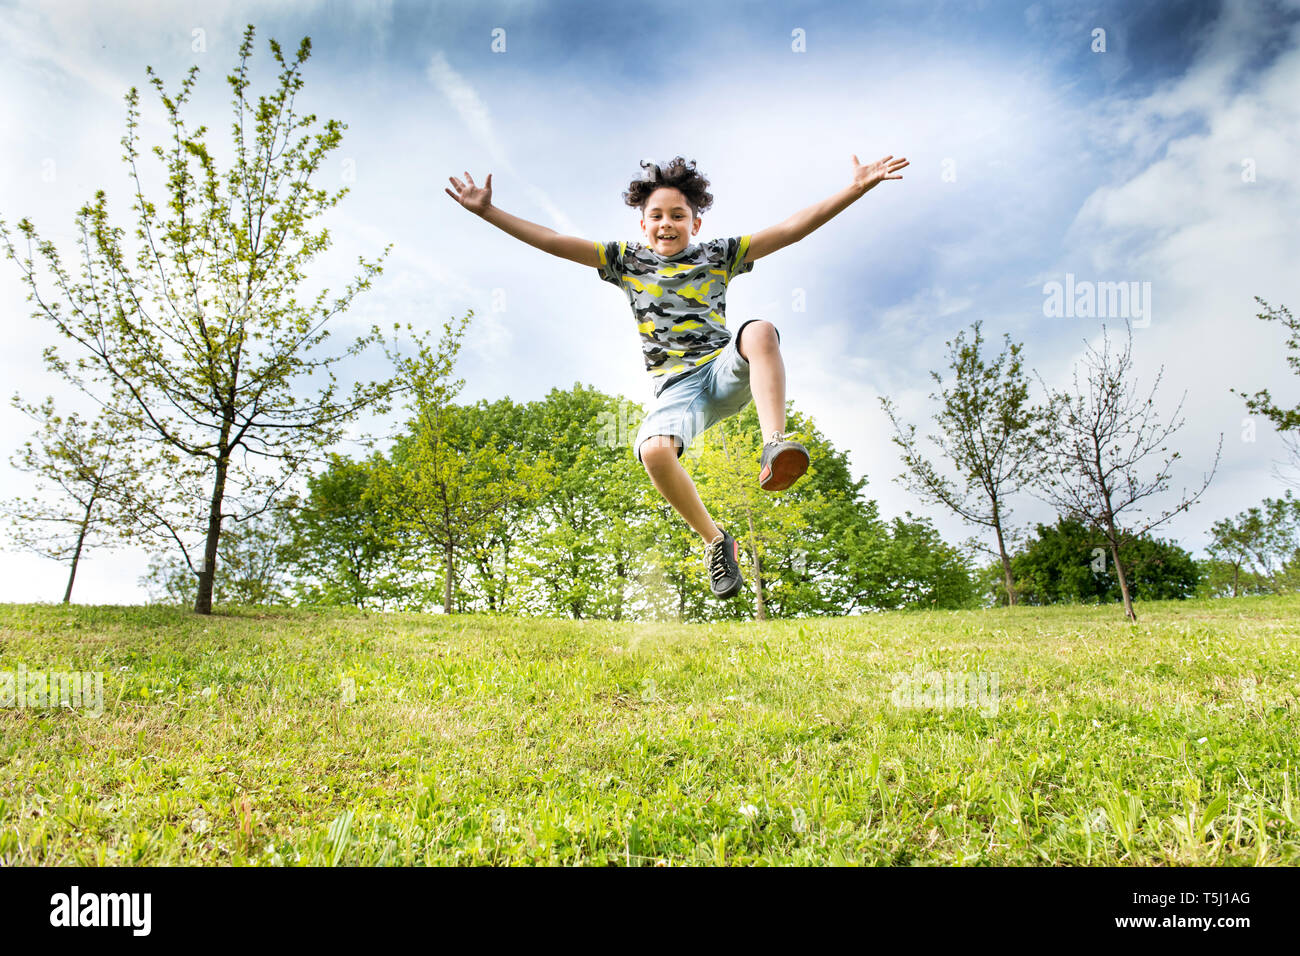 Happy energetic young boy jumping high in the air as he runs across the grass in a garden or park with outstretched arms in a low angle view - Stock Image